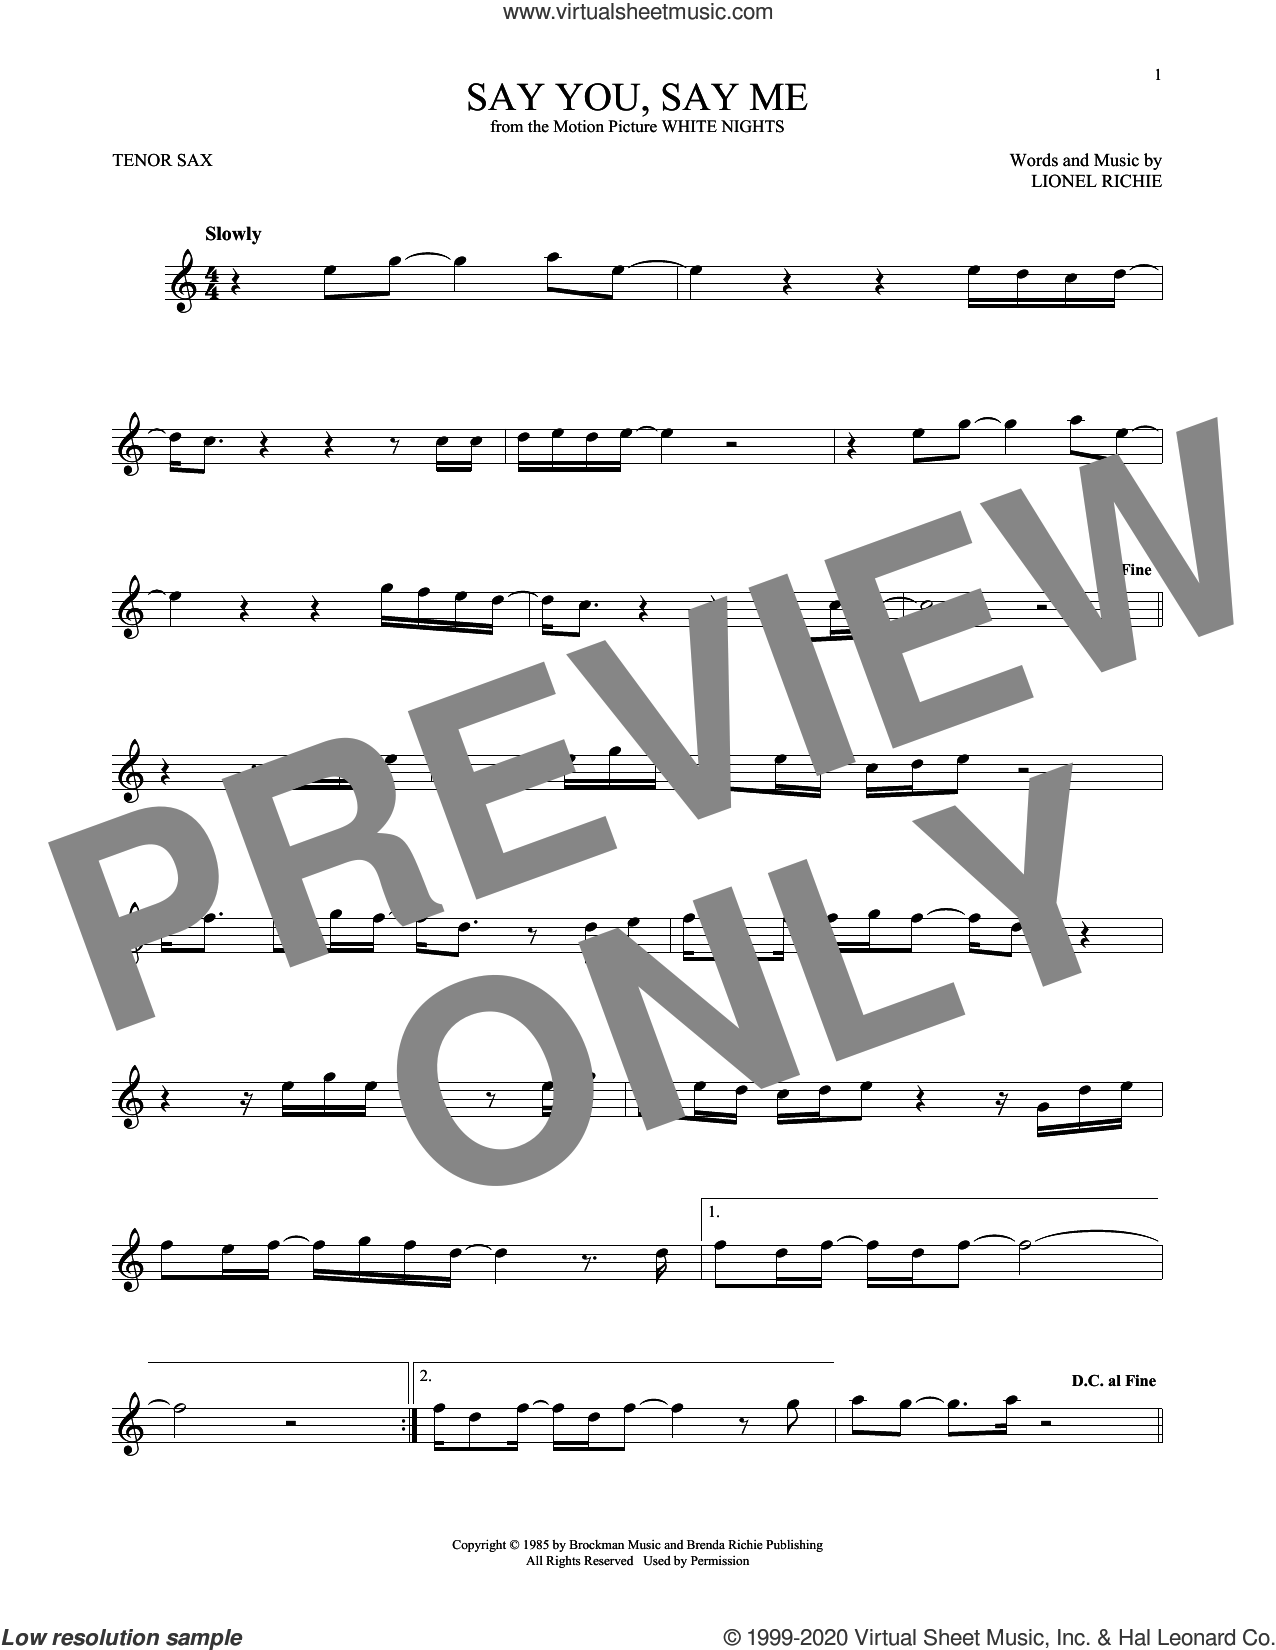 Say You, Say Me sheet music for tenor saxophone solo by Lionel Richie, intermediate skill level